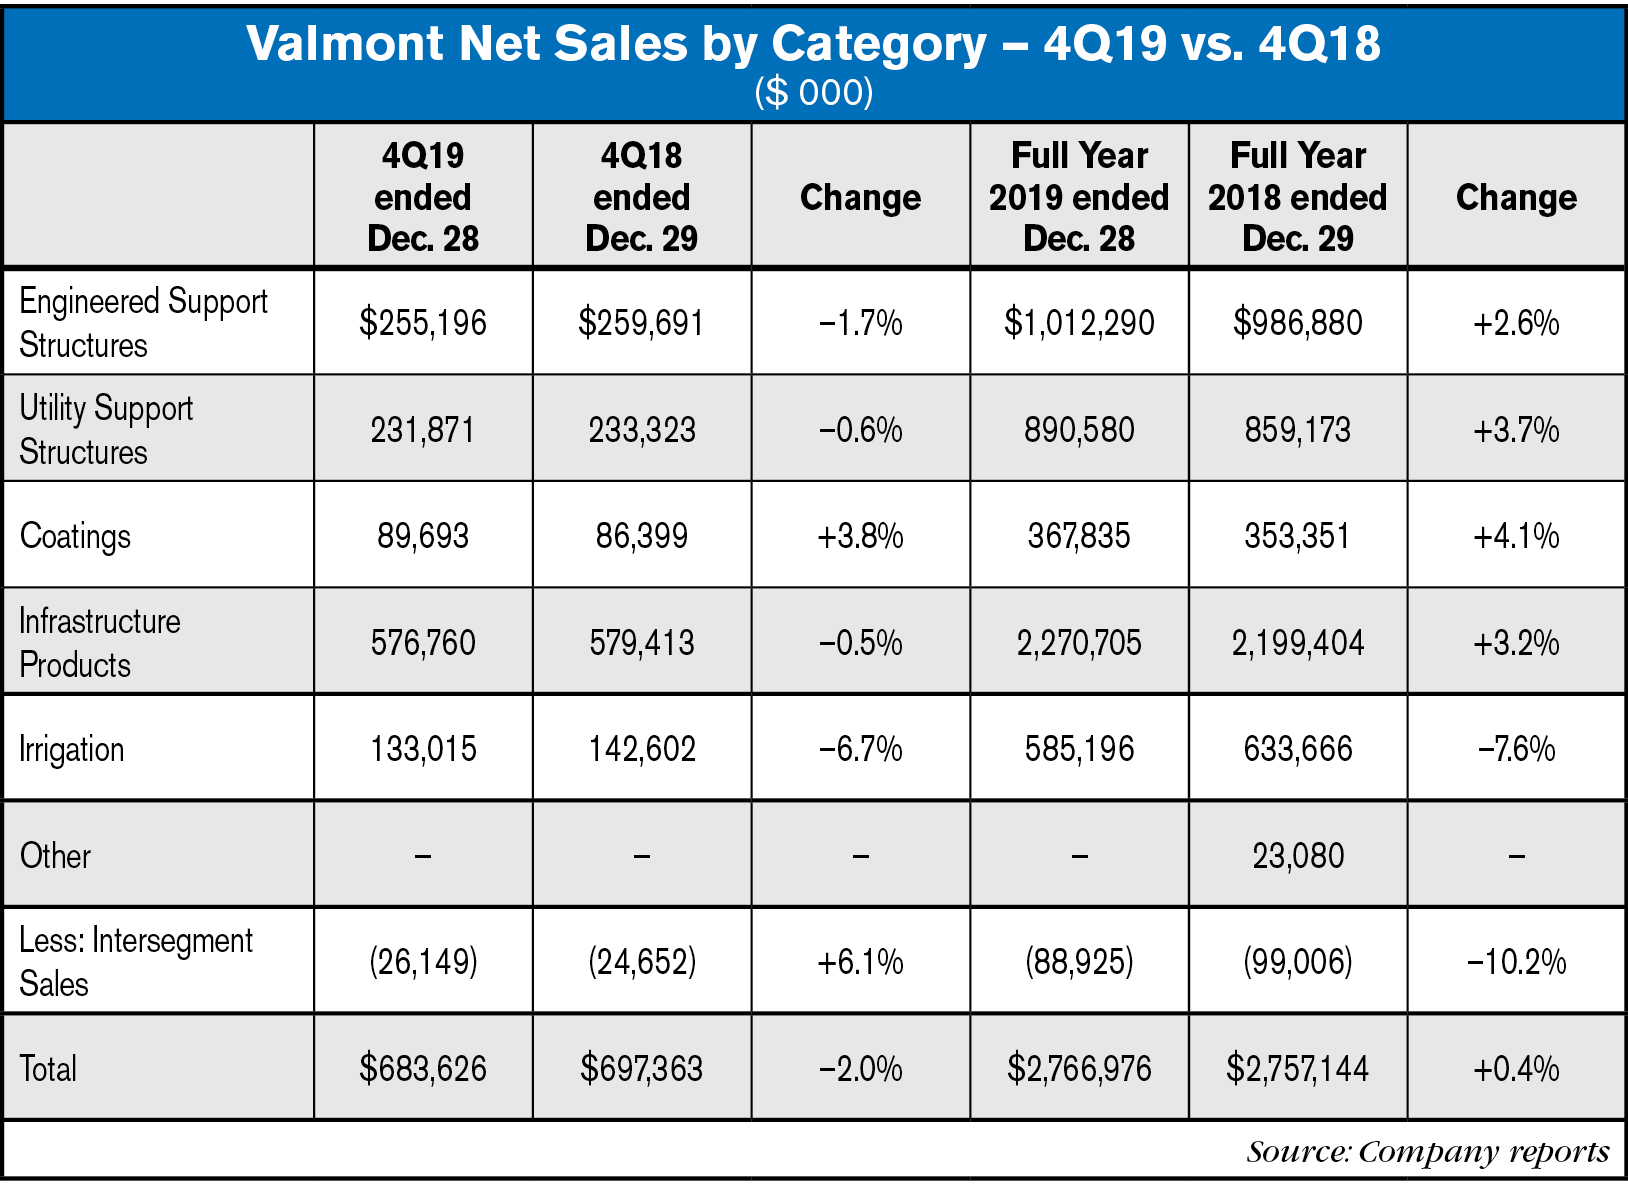 Valmont Sales By Segment Full Year 2019